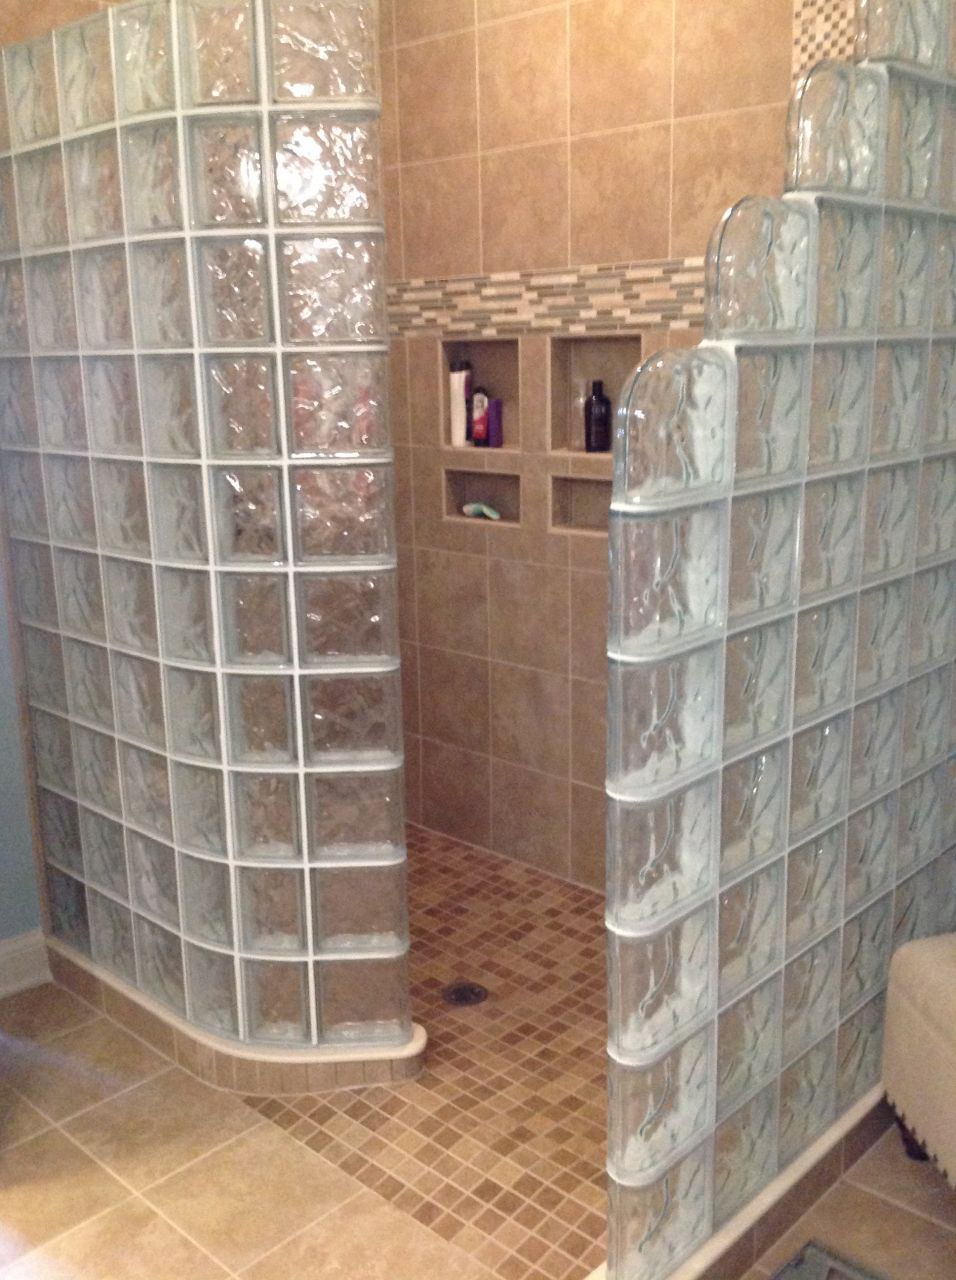 Glass block showers 7 reasons to choose a ready for tile base glass block bathroom ideas glass block shower with a ready for tile shower base dailygadgetfo Choice Image